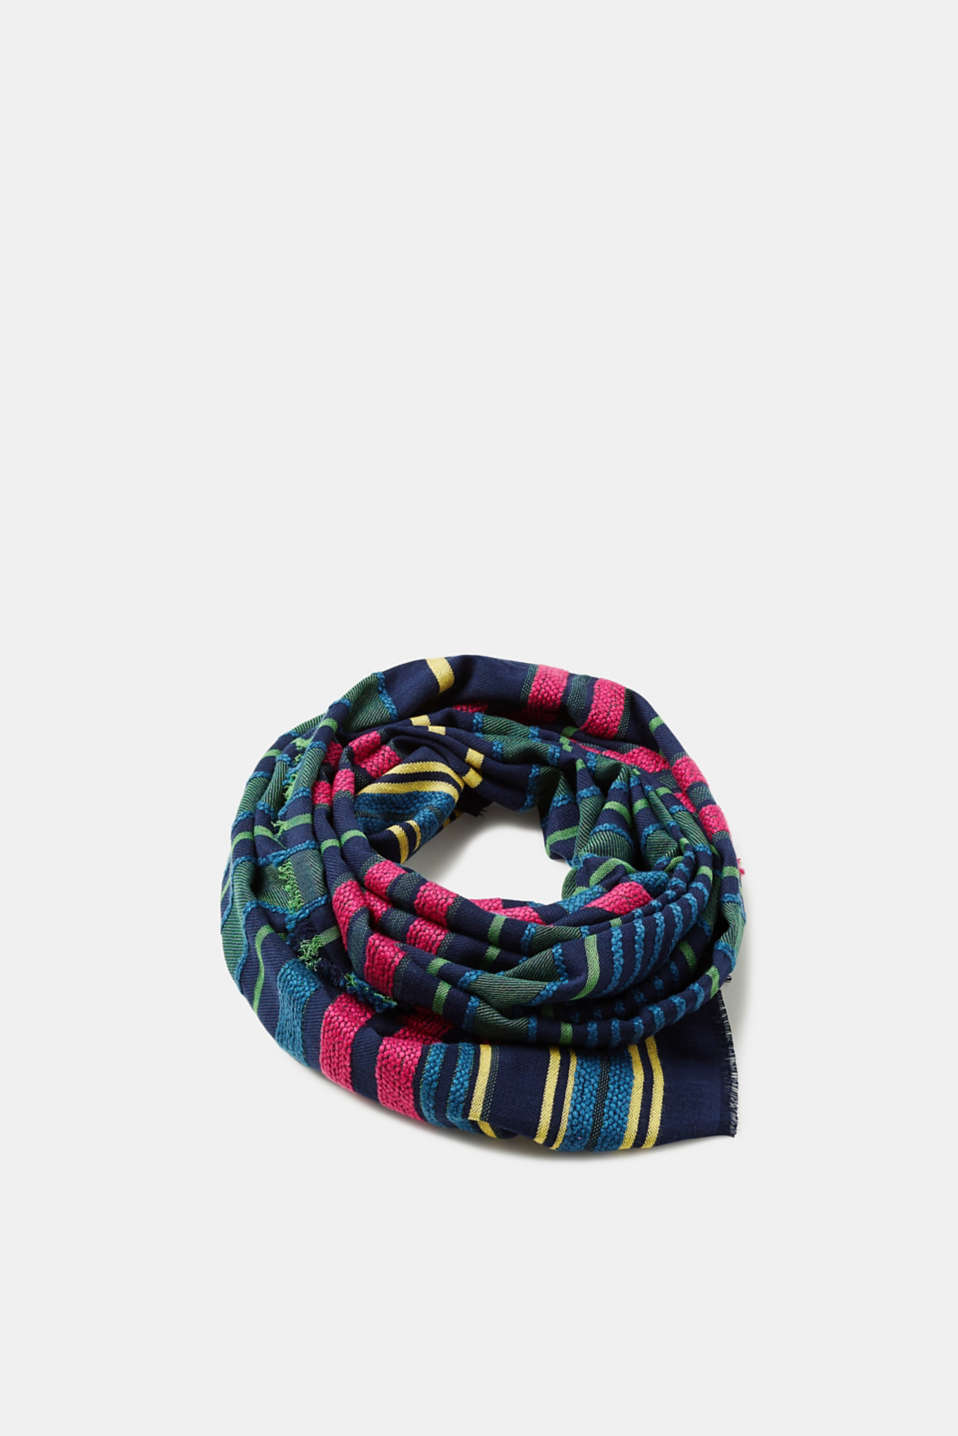 Esprit - Scarf with textured stripes, 100% cotton